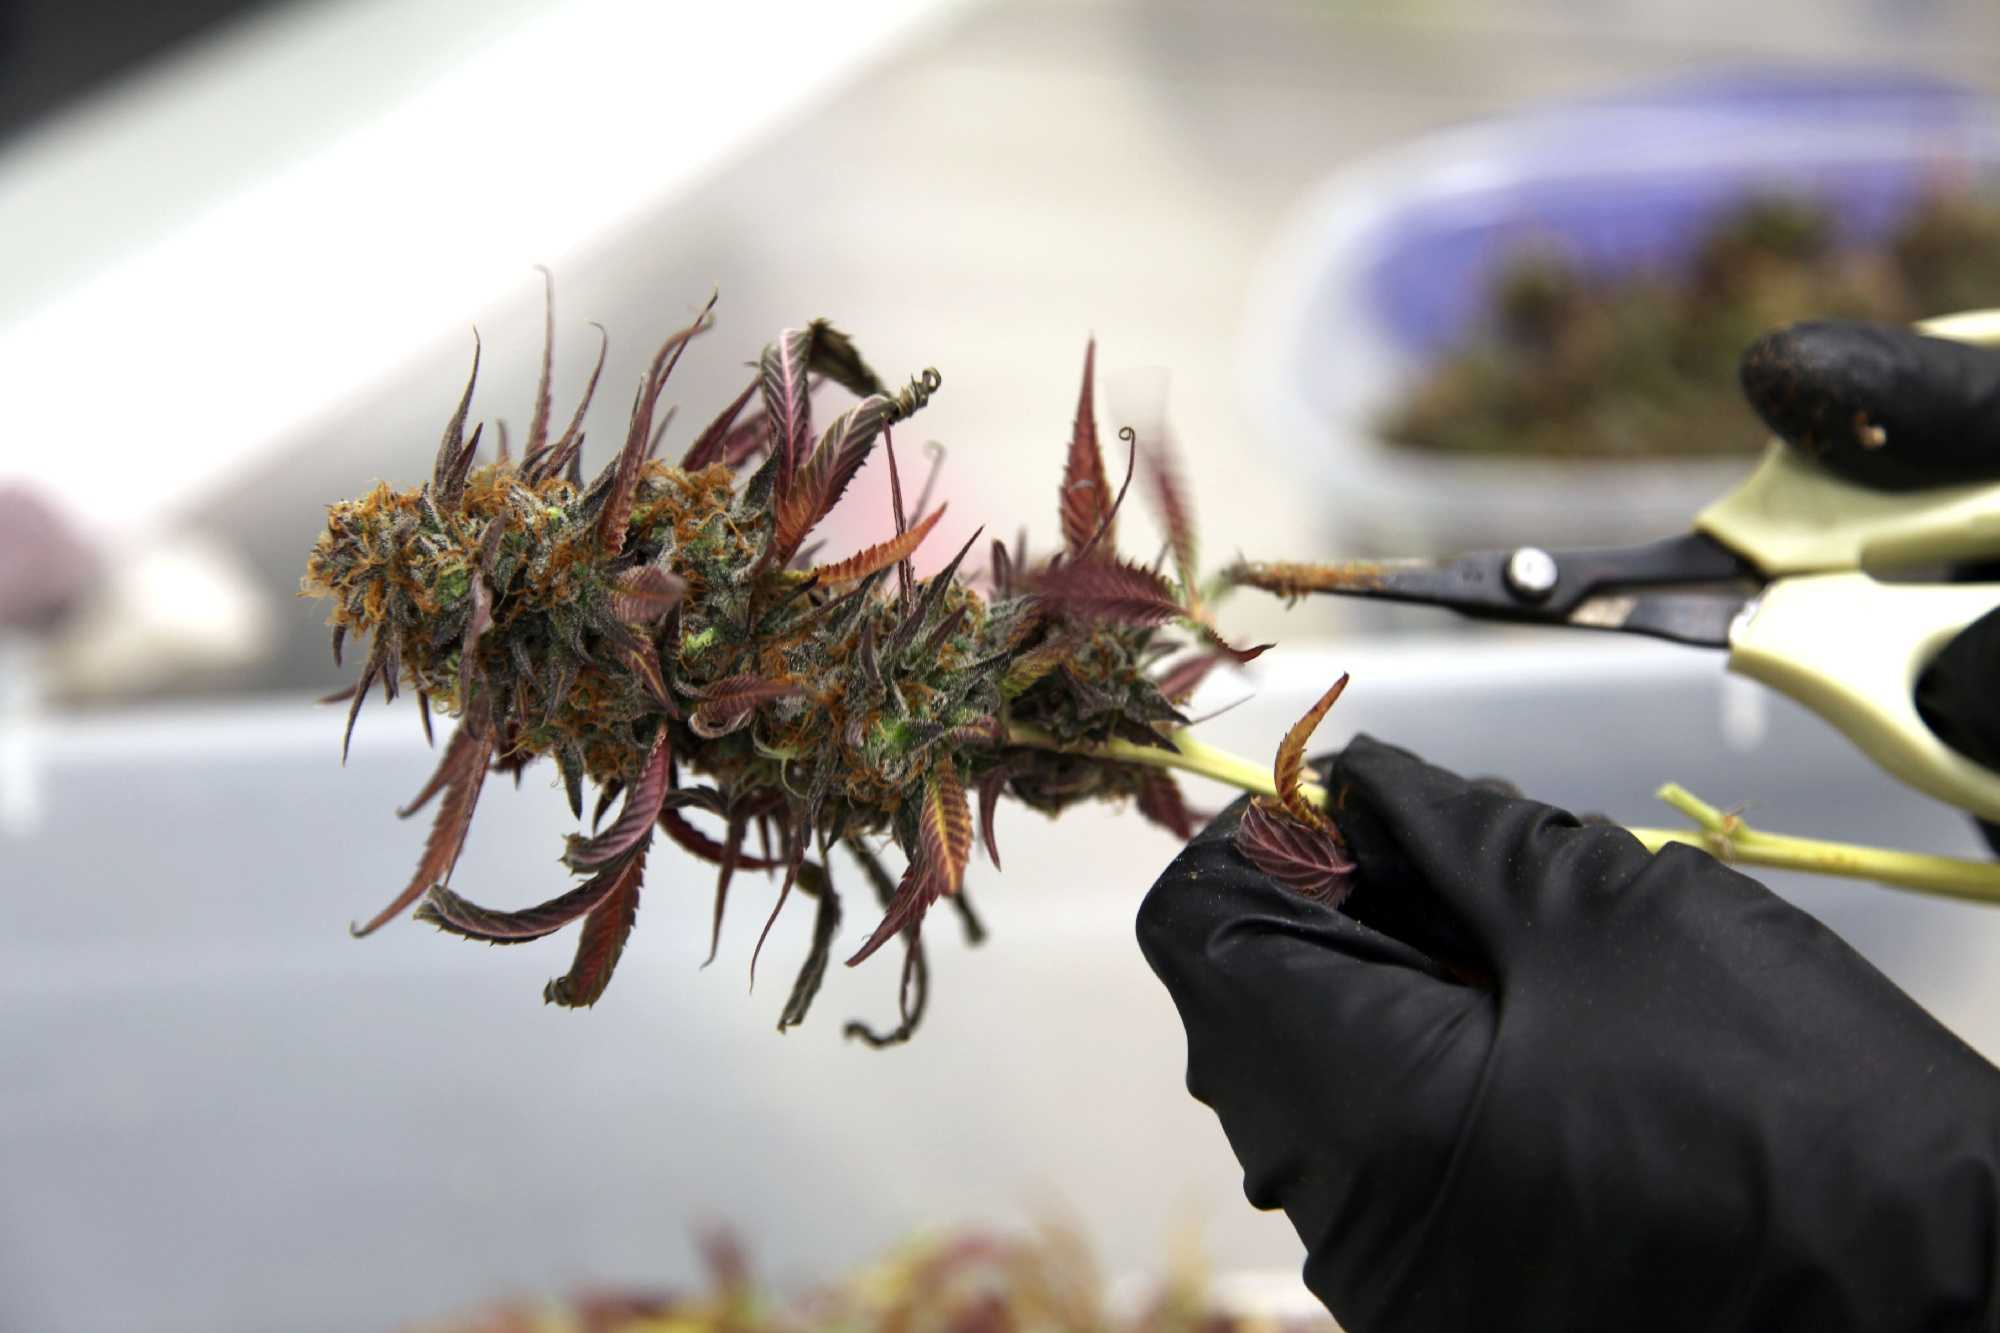 Groundbreaking medical pot case allowed to move forward